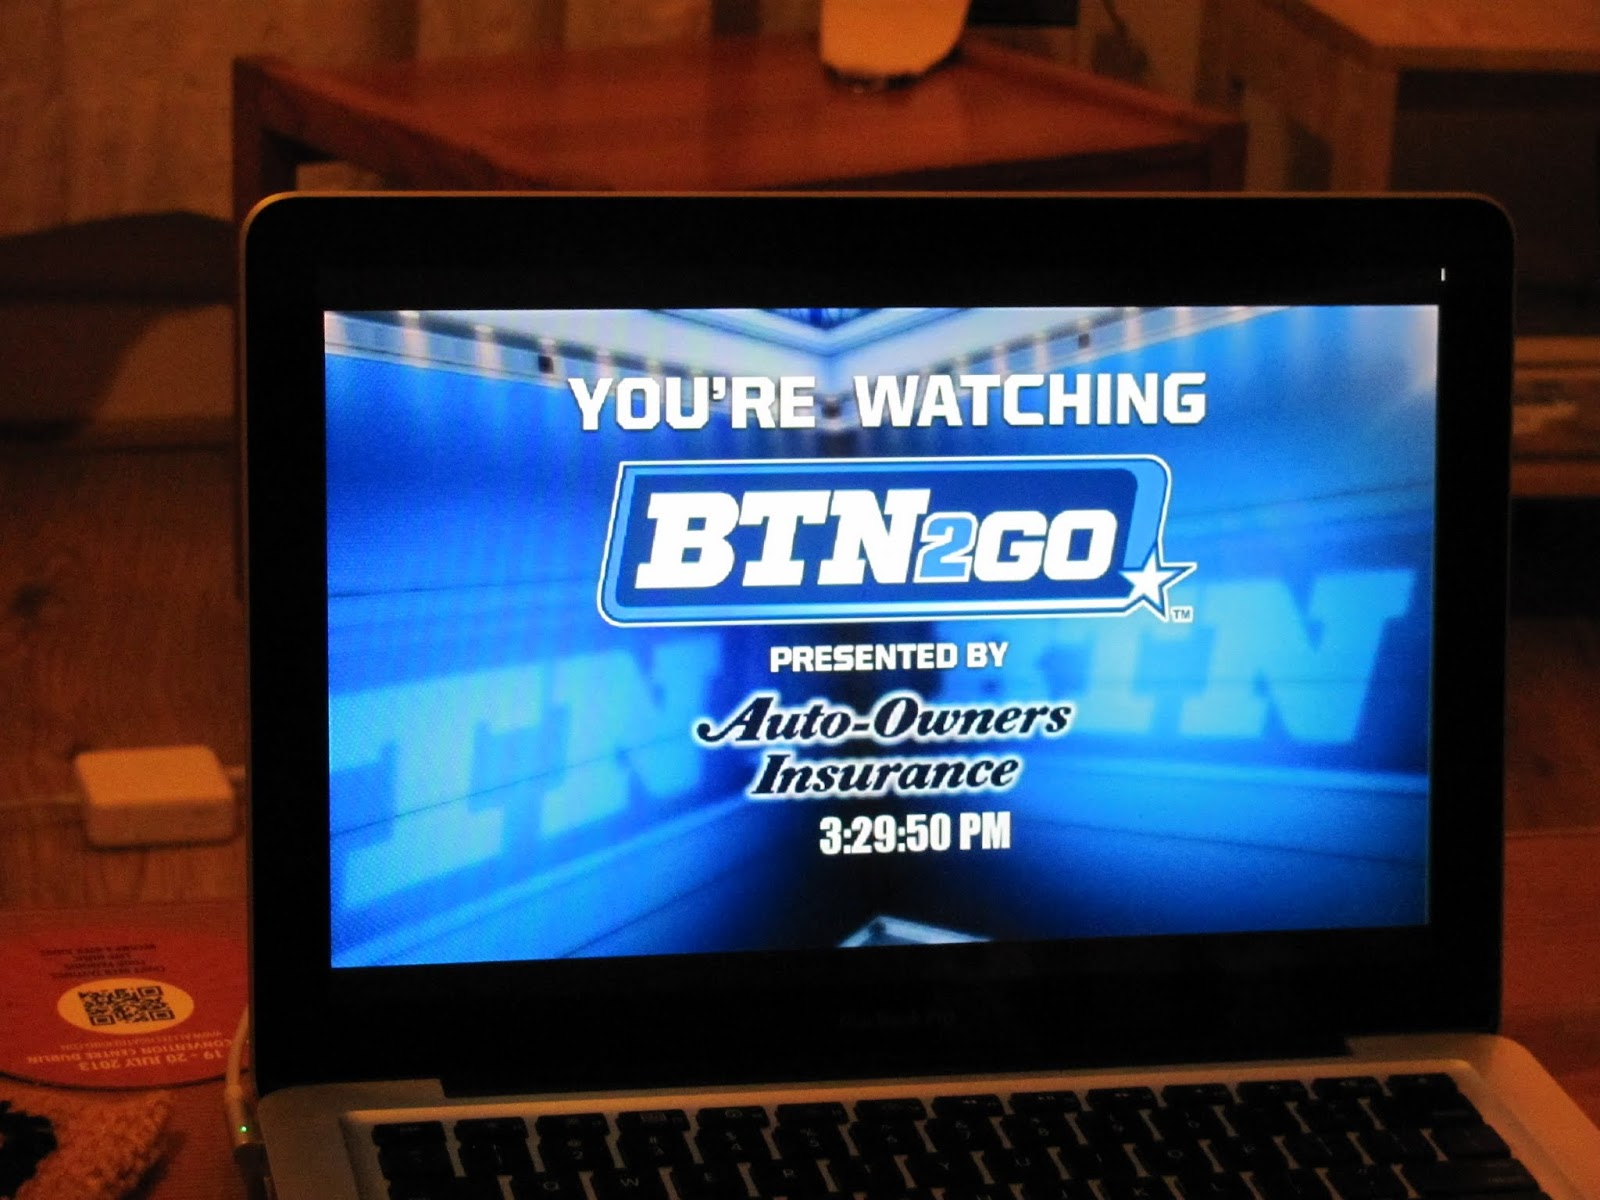 Computer screen showing the BTN2GO logo before the Iowa Hawkeyes football game